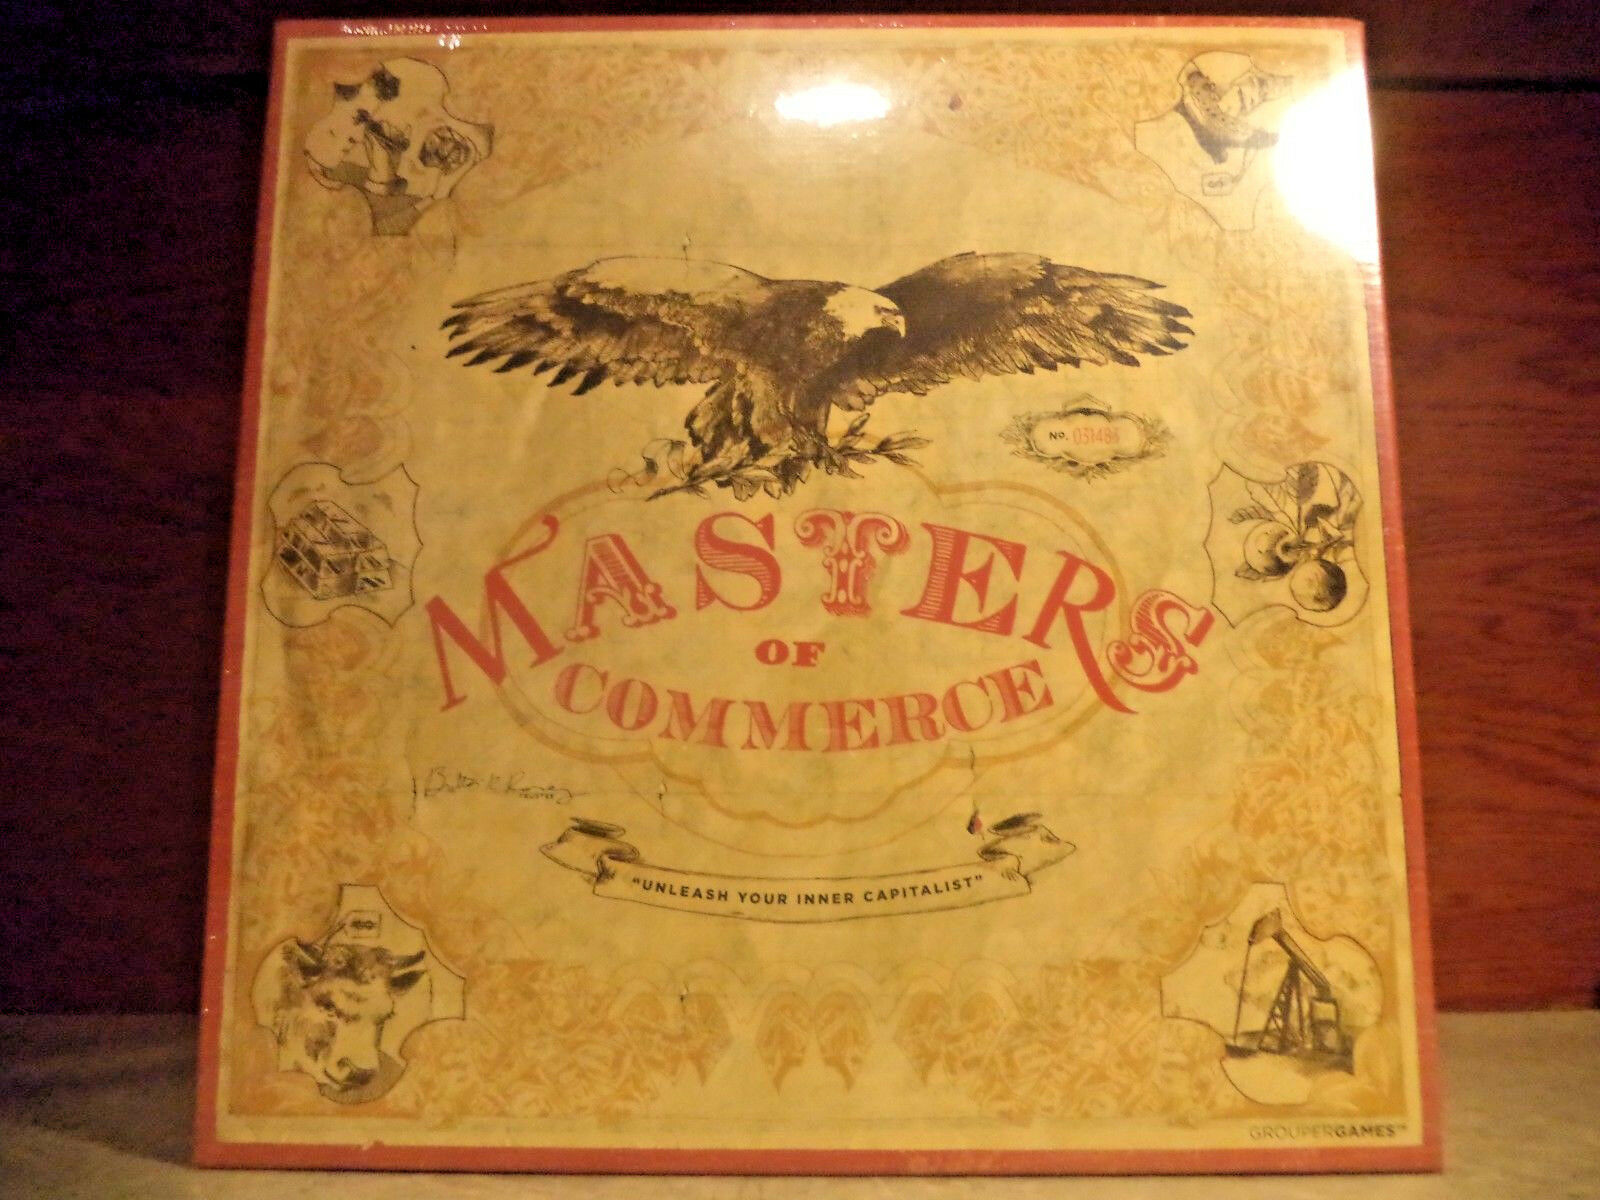 Masters of Commerce-Financier Marché Boursier Board Game Tycoon Jeux Neuf New in Box